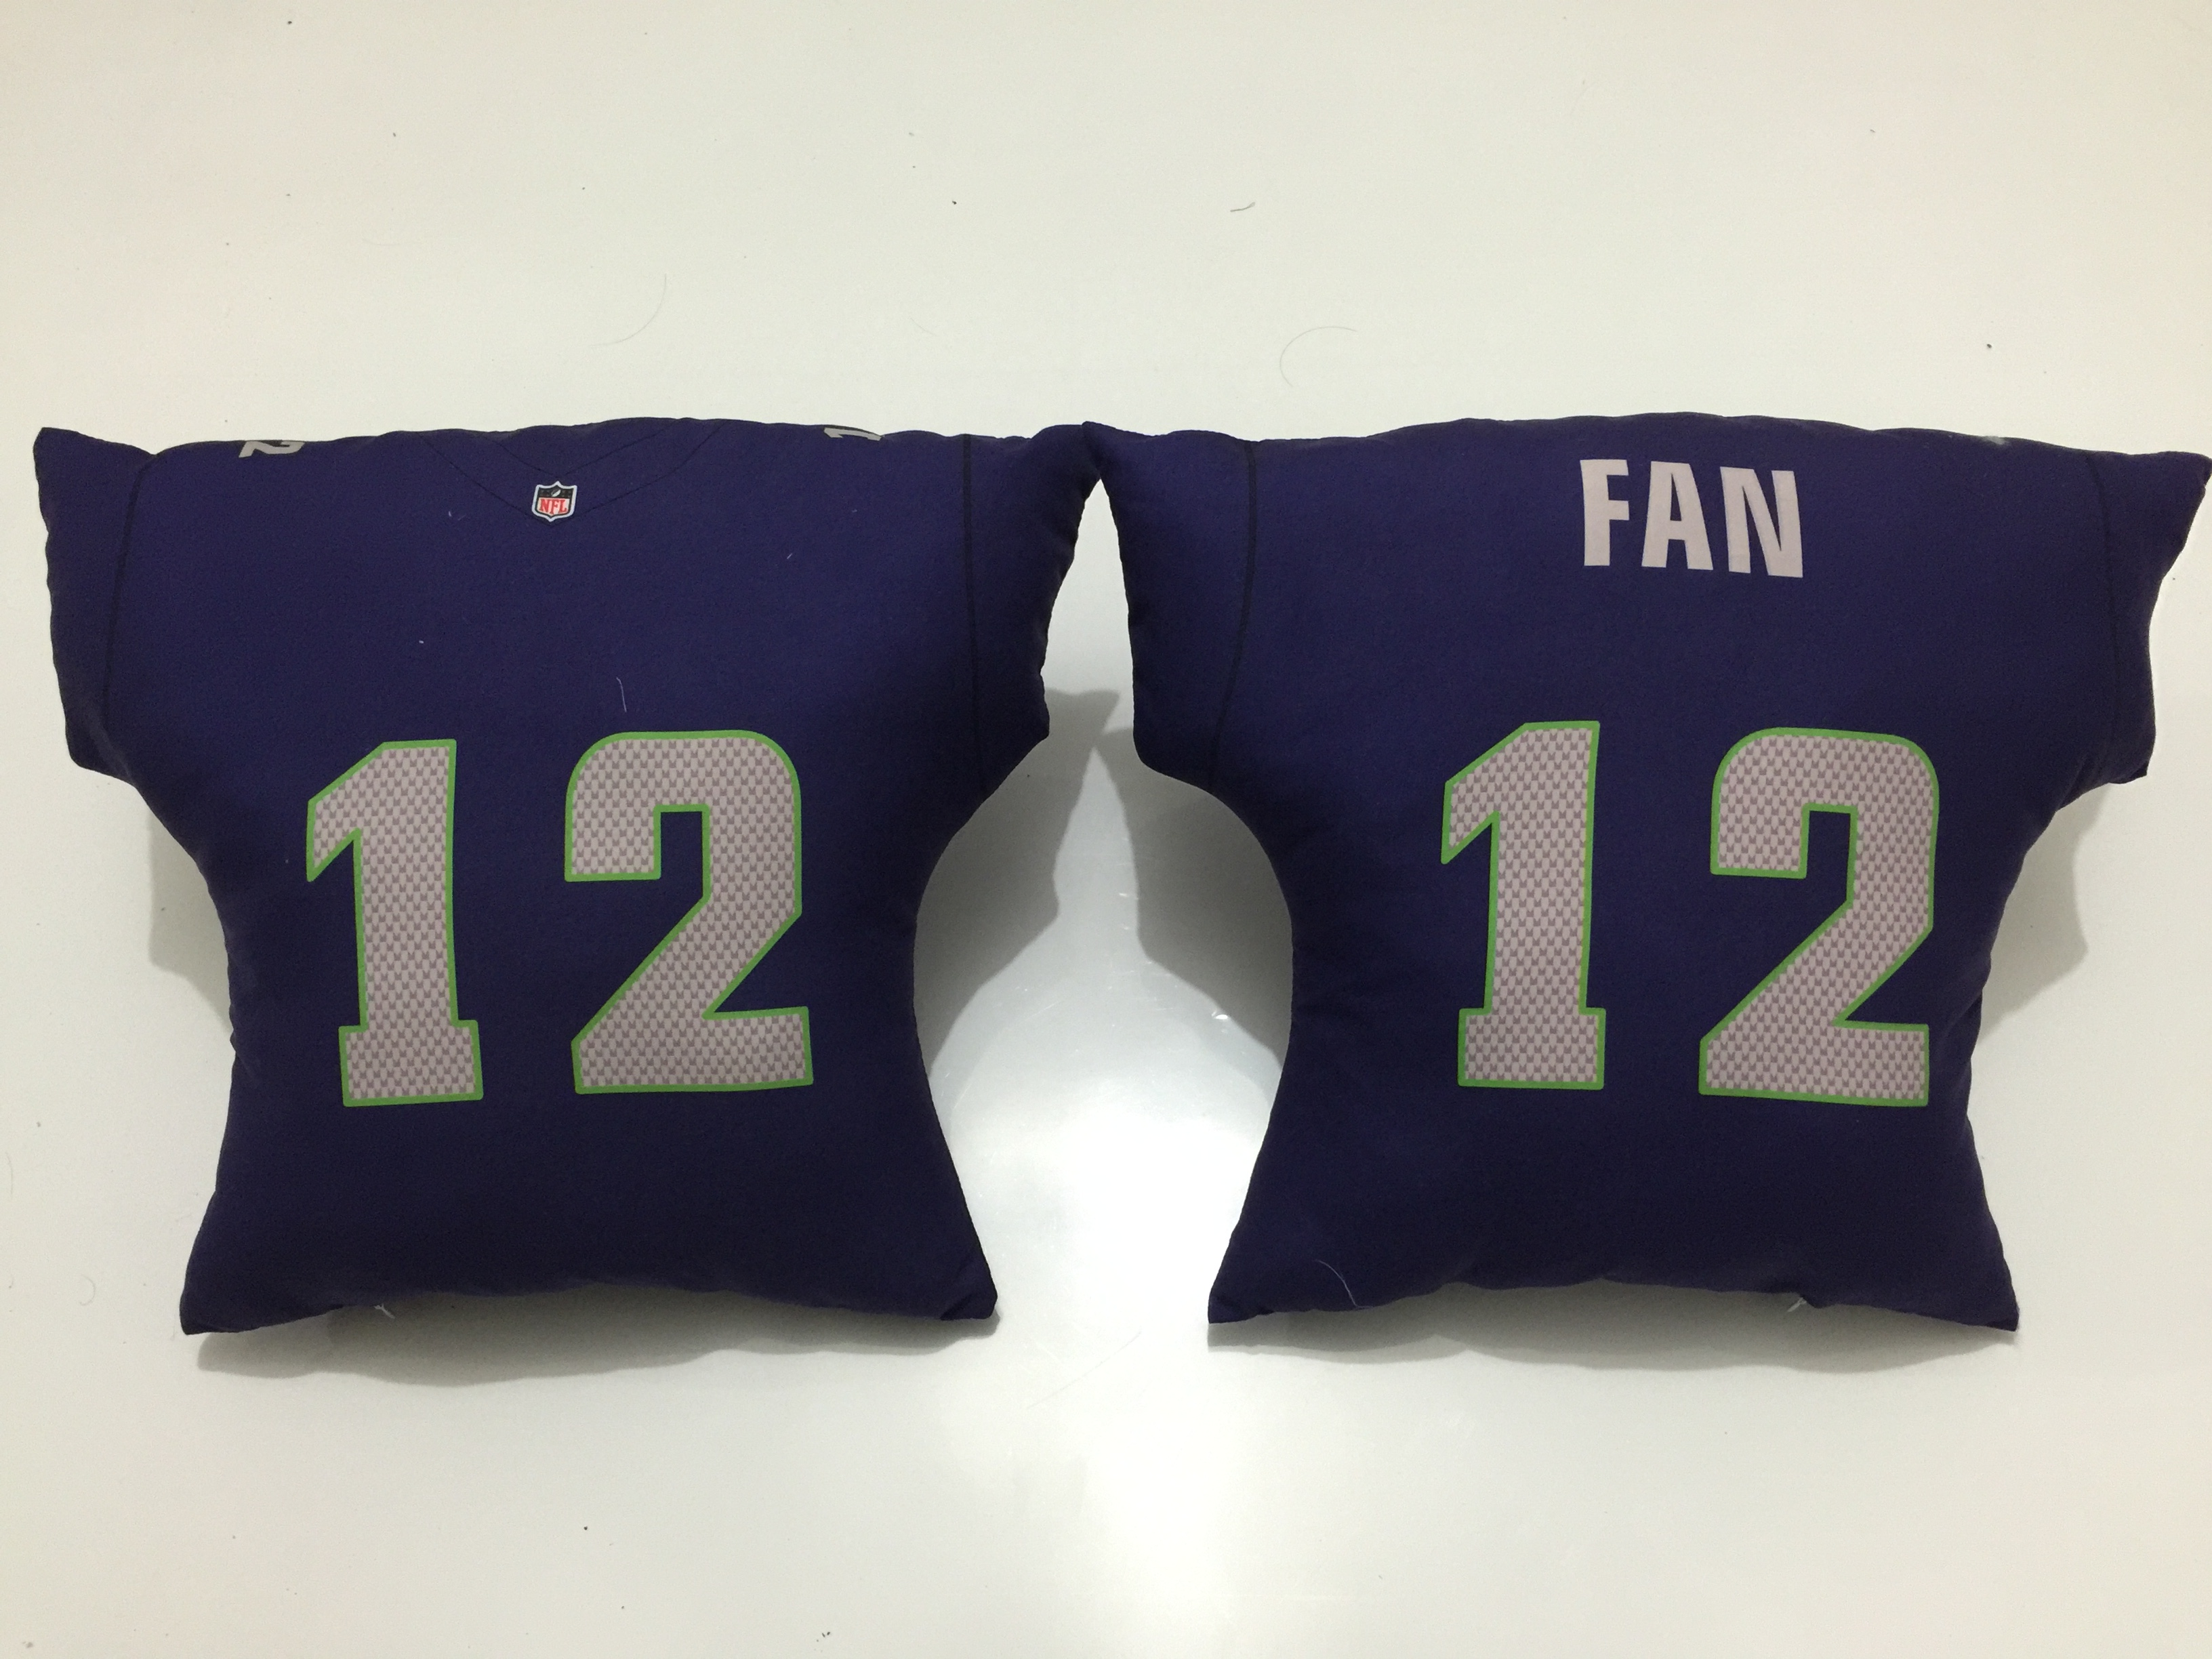 Seattle Seahawks 12 Fan Navy NFL Pillow